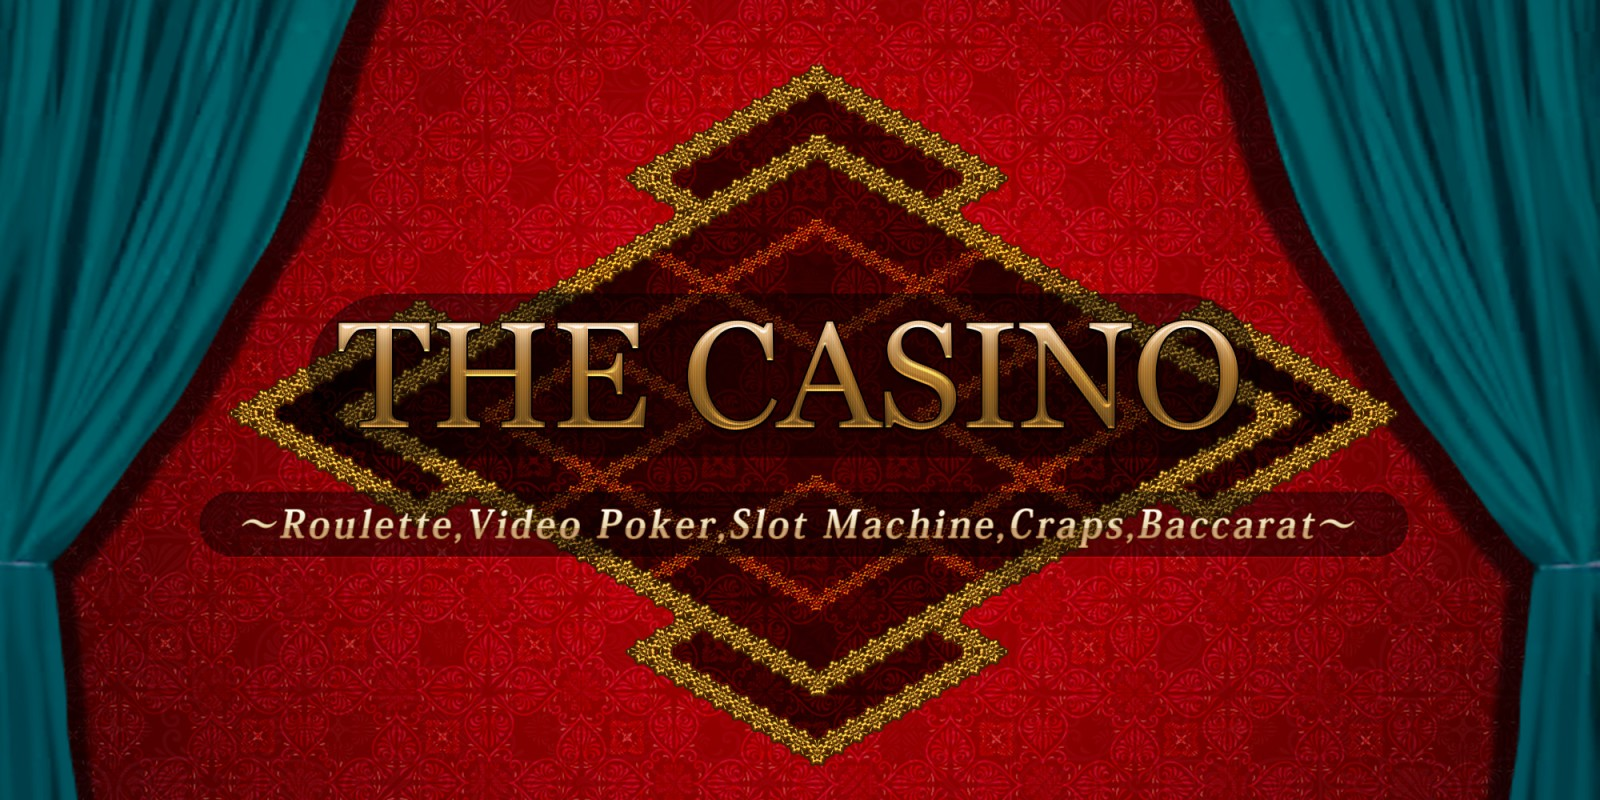 The Casino -Roulette, Video Poker, Slot Machines, Craps, Baccarat-